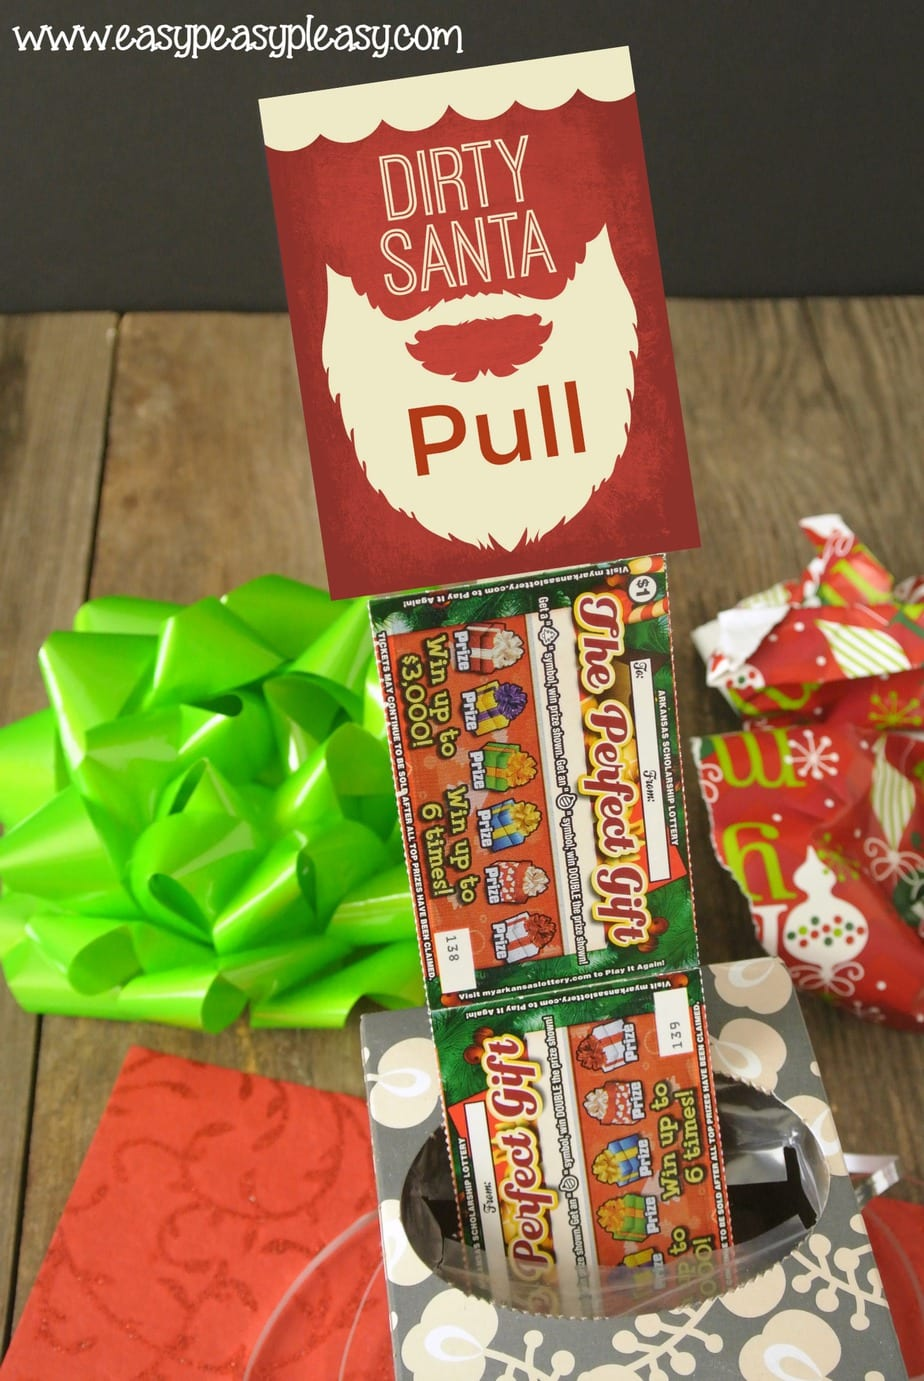 Dirty Santa Gift using Lottery Tickets and an empty box of tissue. Free printable gift tags.